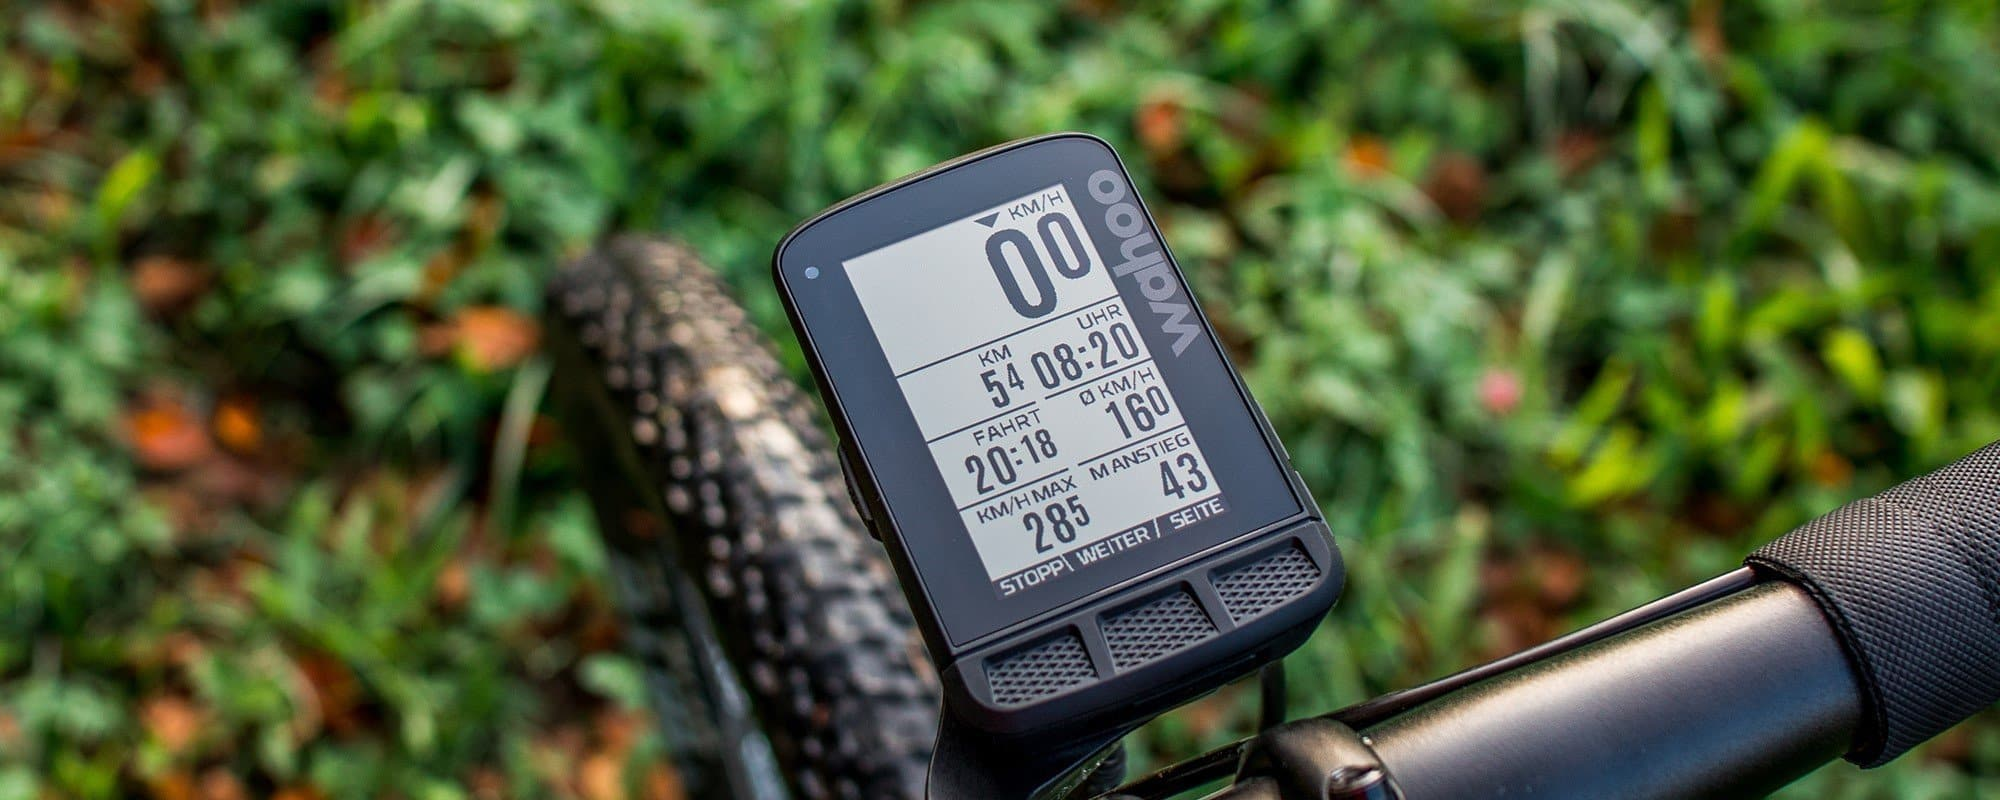 Best bike computer 2021 - Which bike computer will navigate you to your destination?